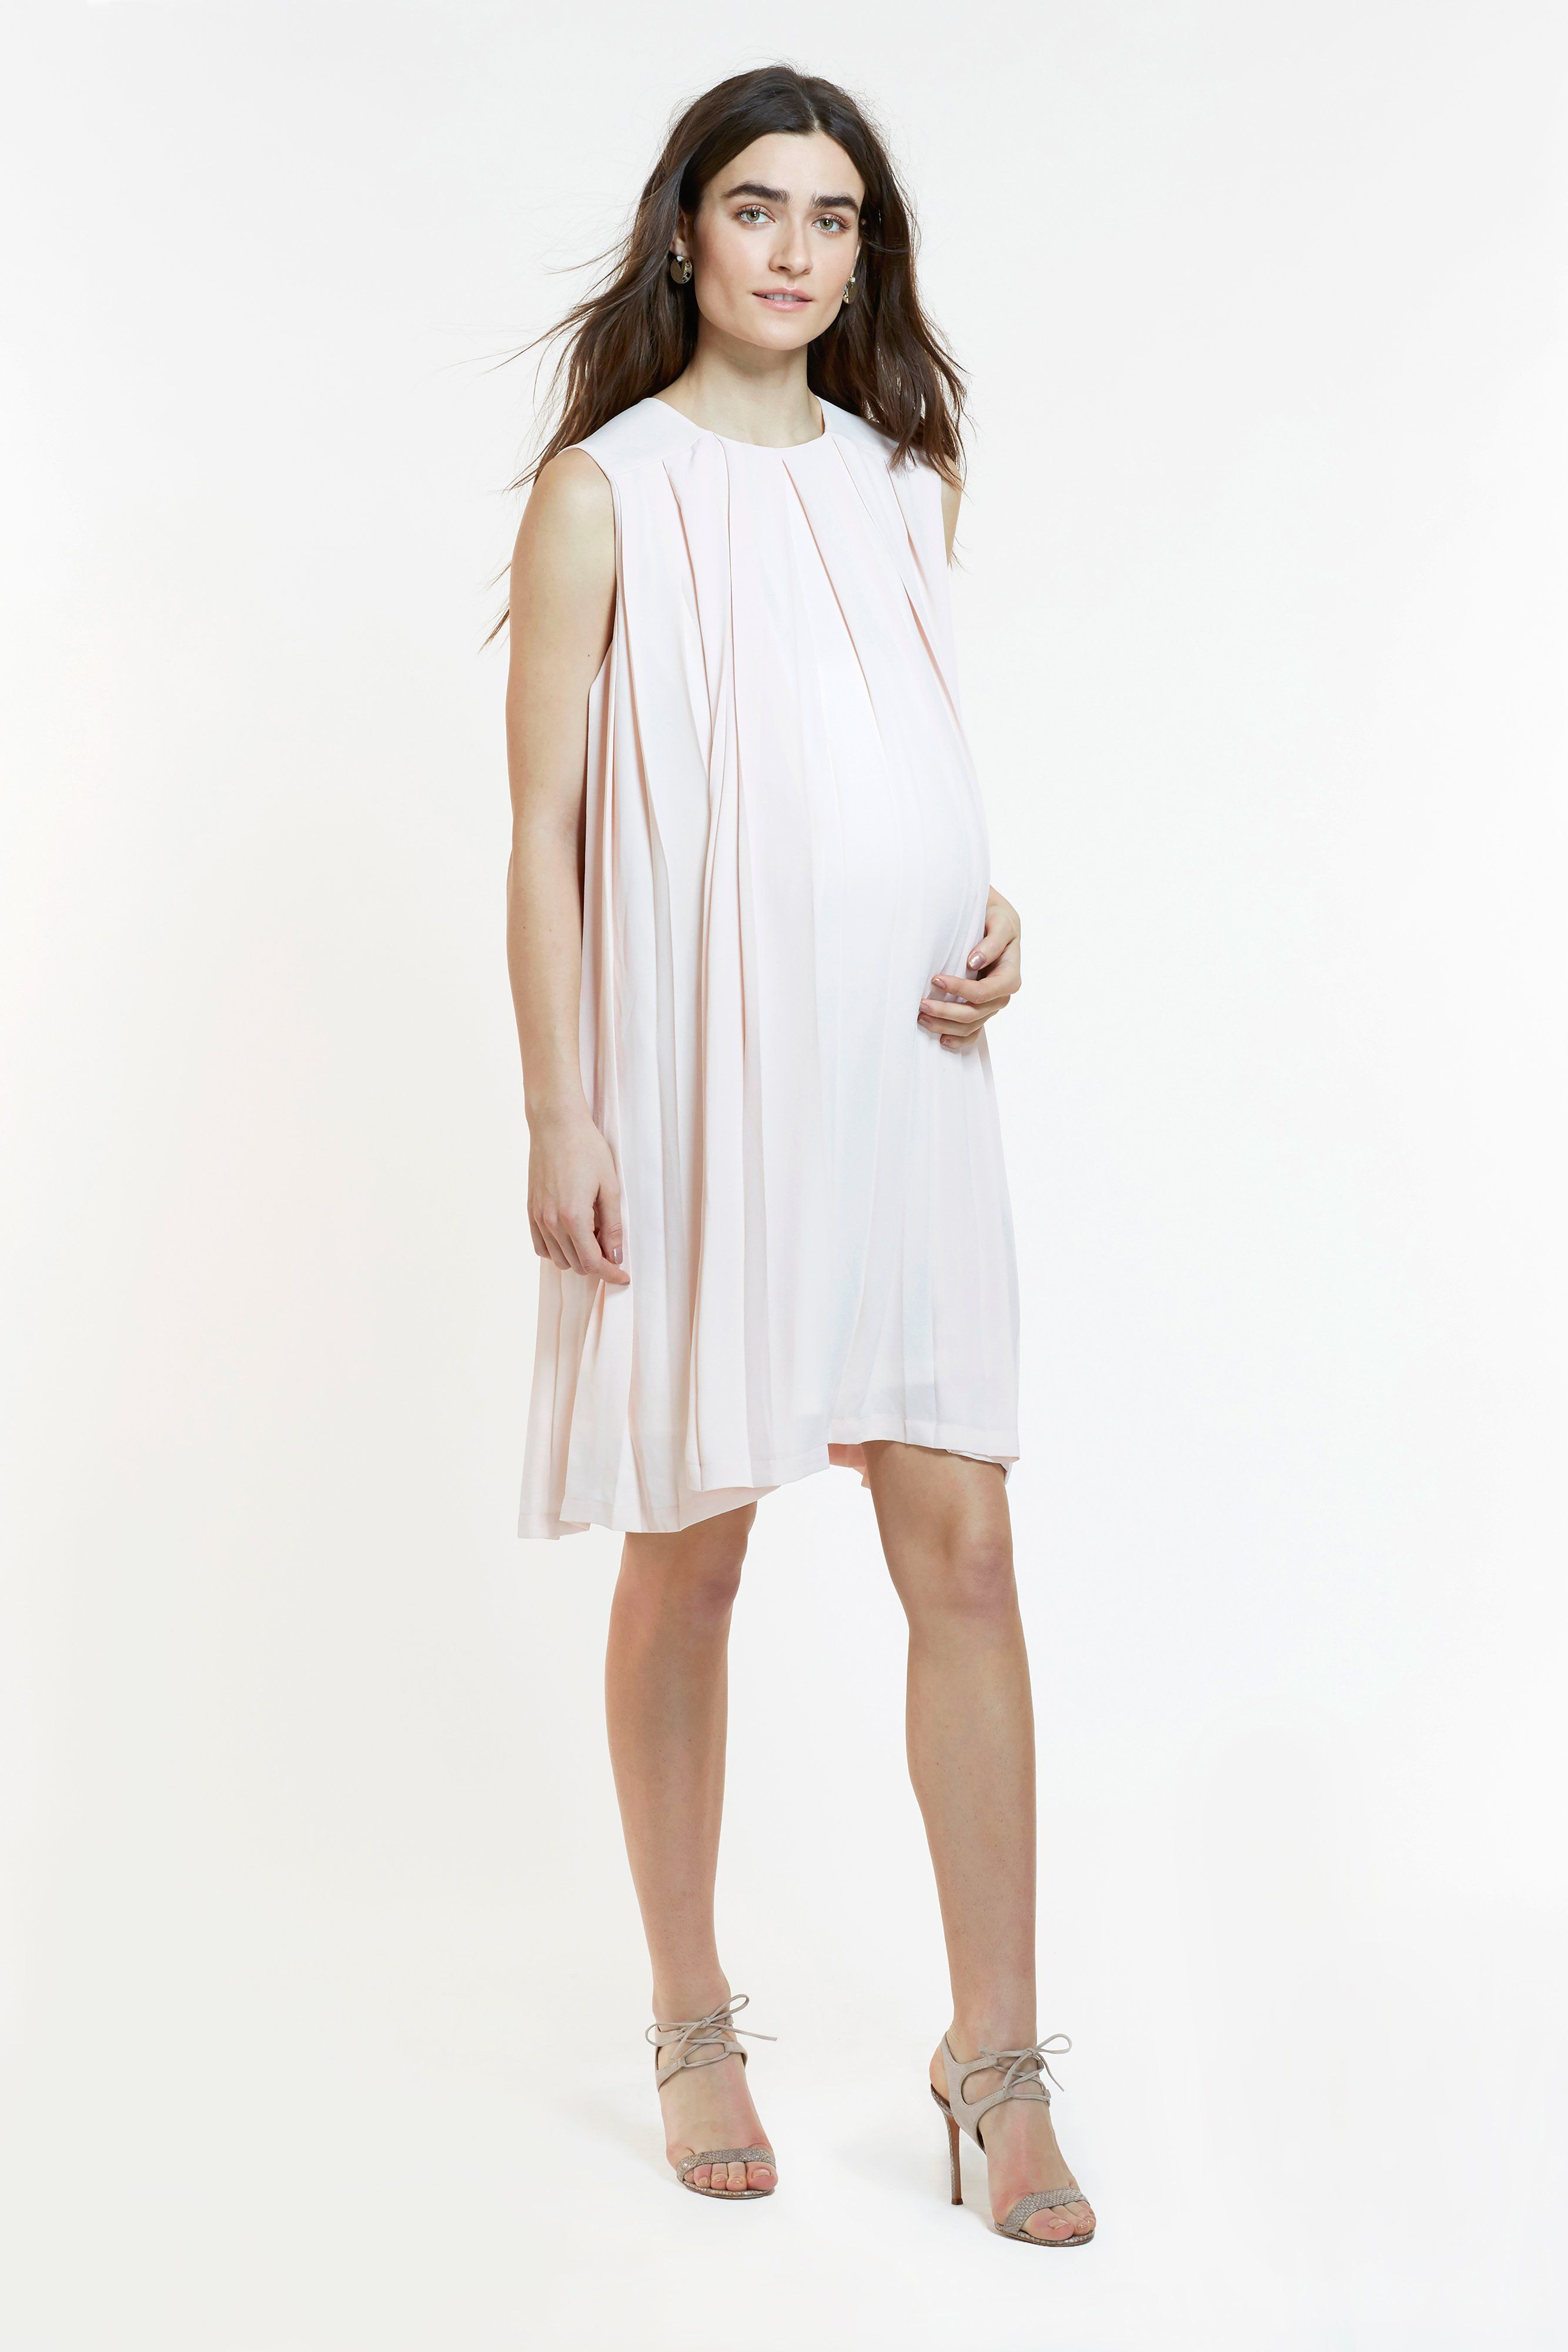 885752fc5b534 Made with butterfly soft Japanese crepe, this classic nursing dress with  beautiful box pleats is as elegant as it is comfortable.